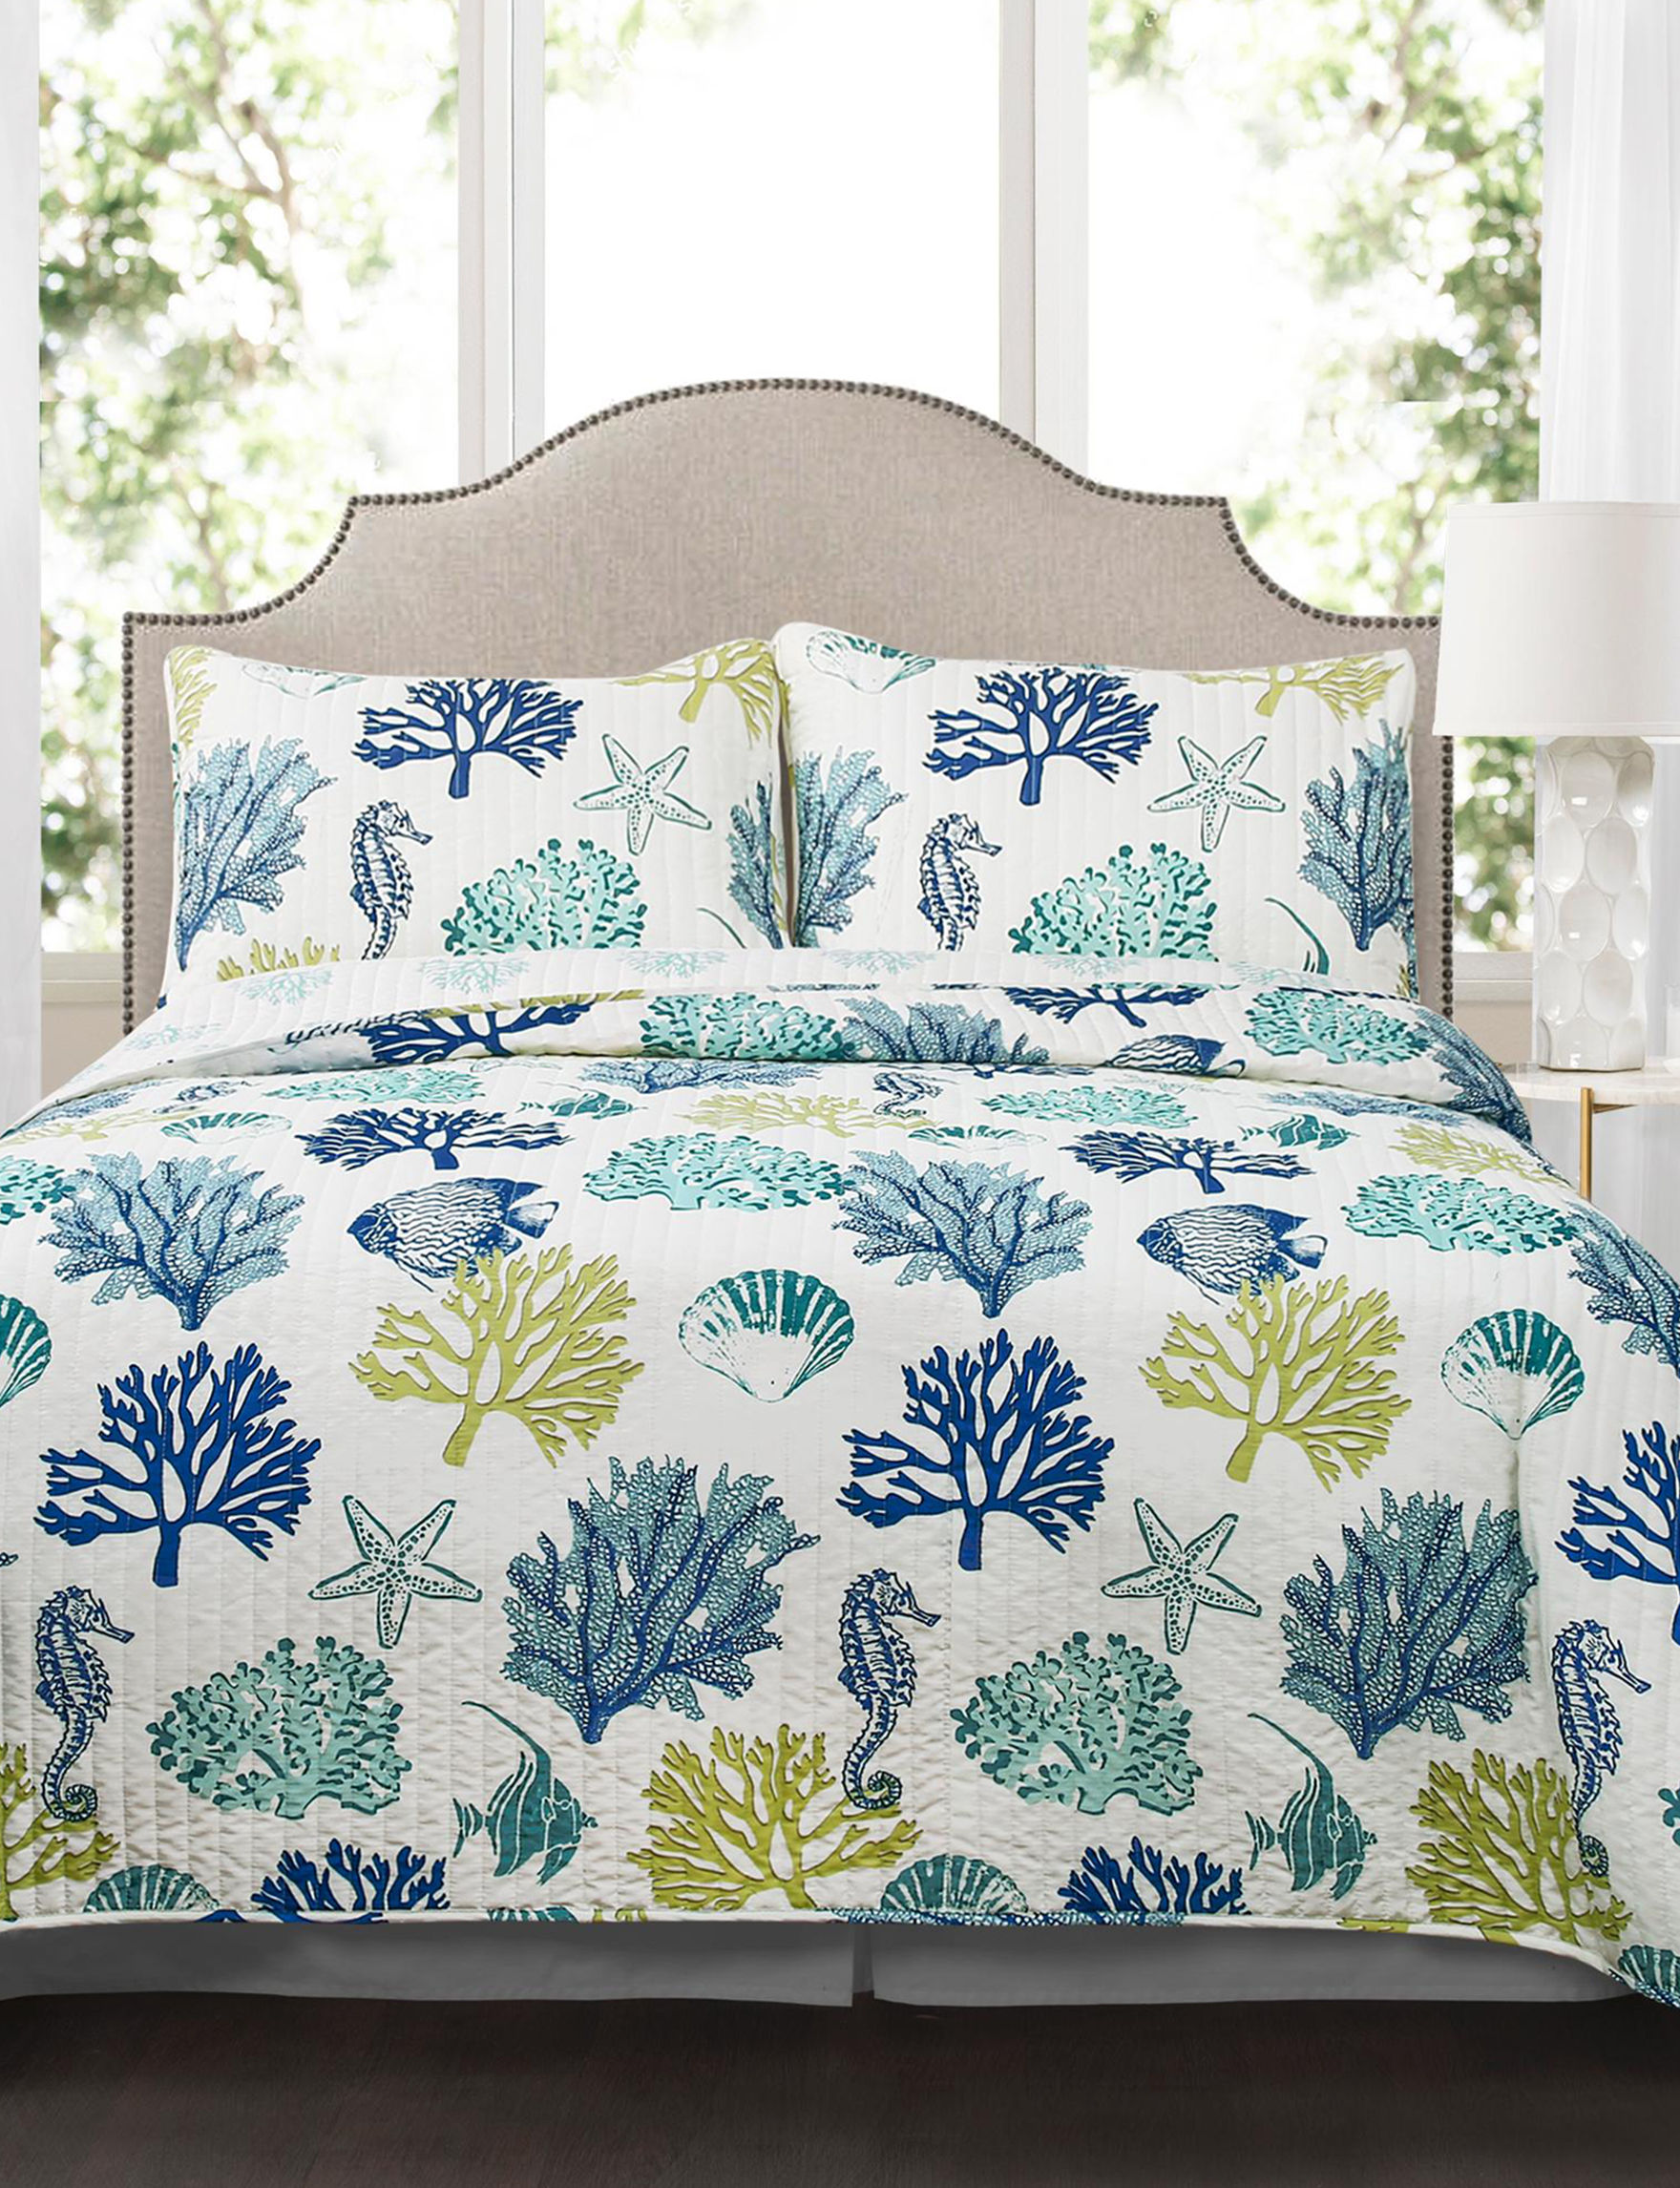 Lush Decor Navy / White Quilts & Quilt Sets